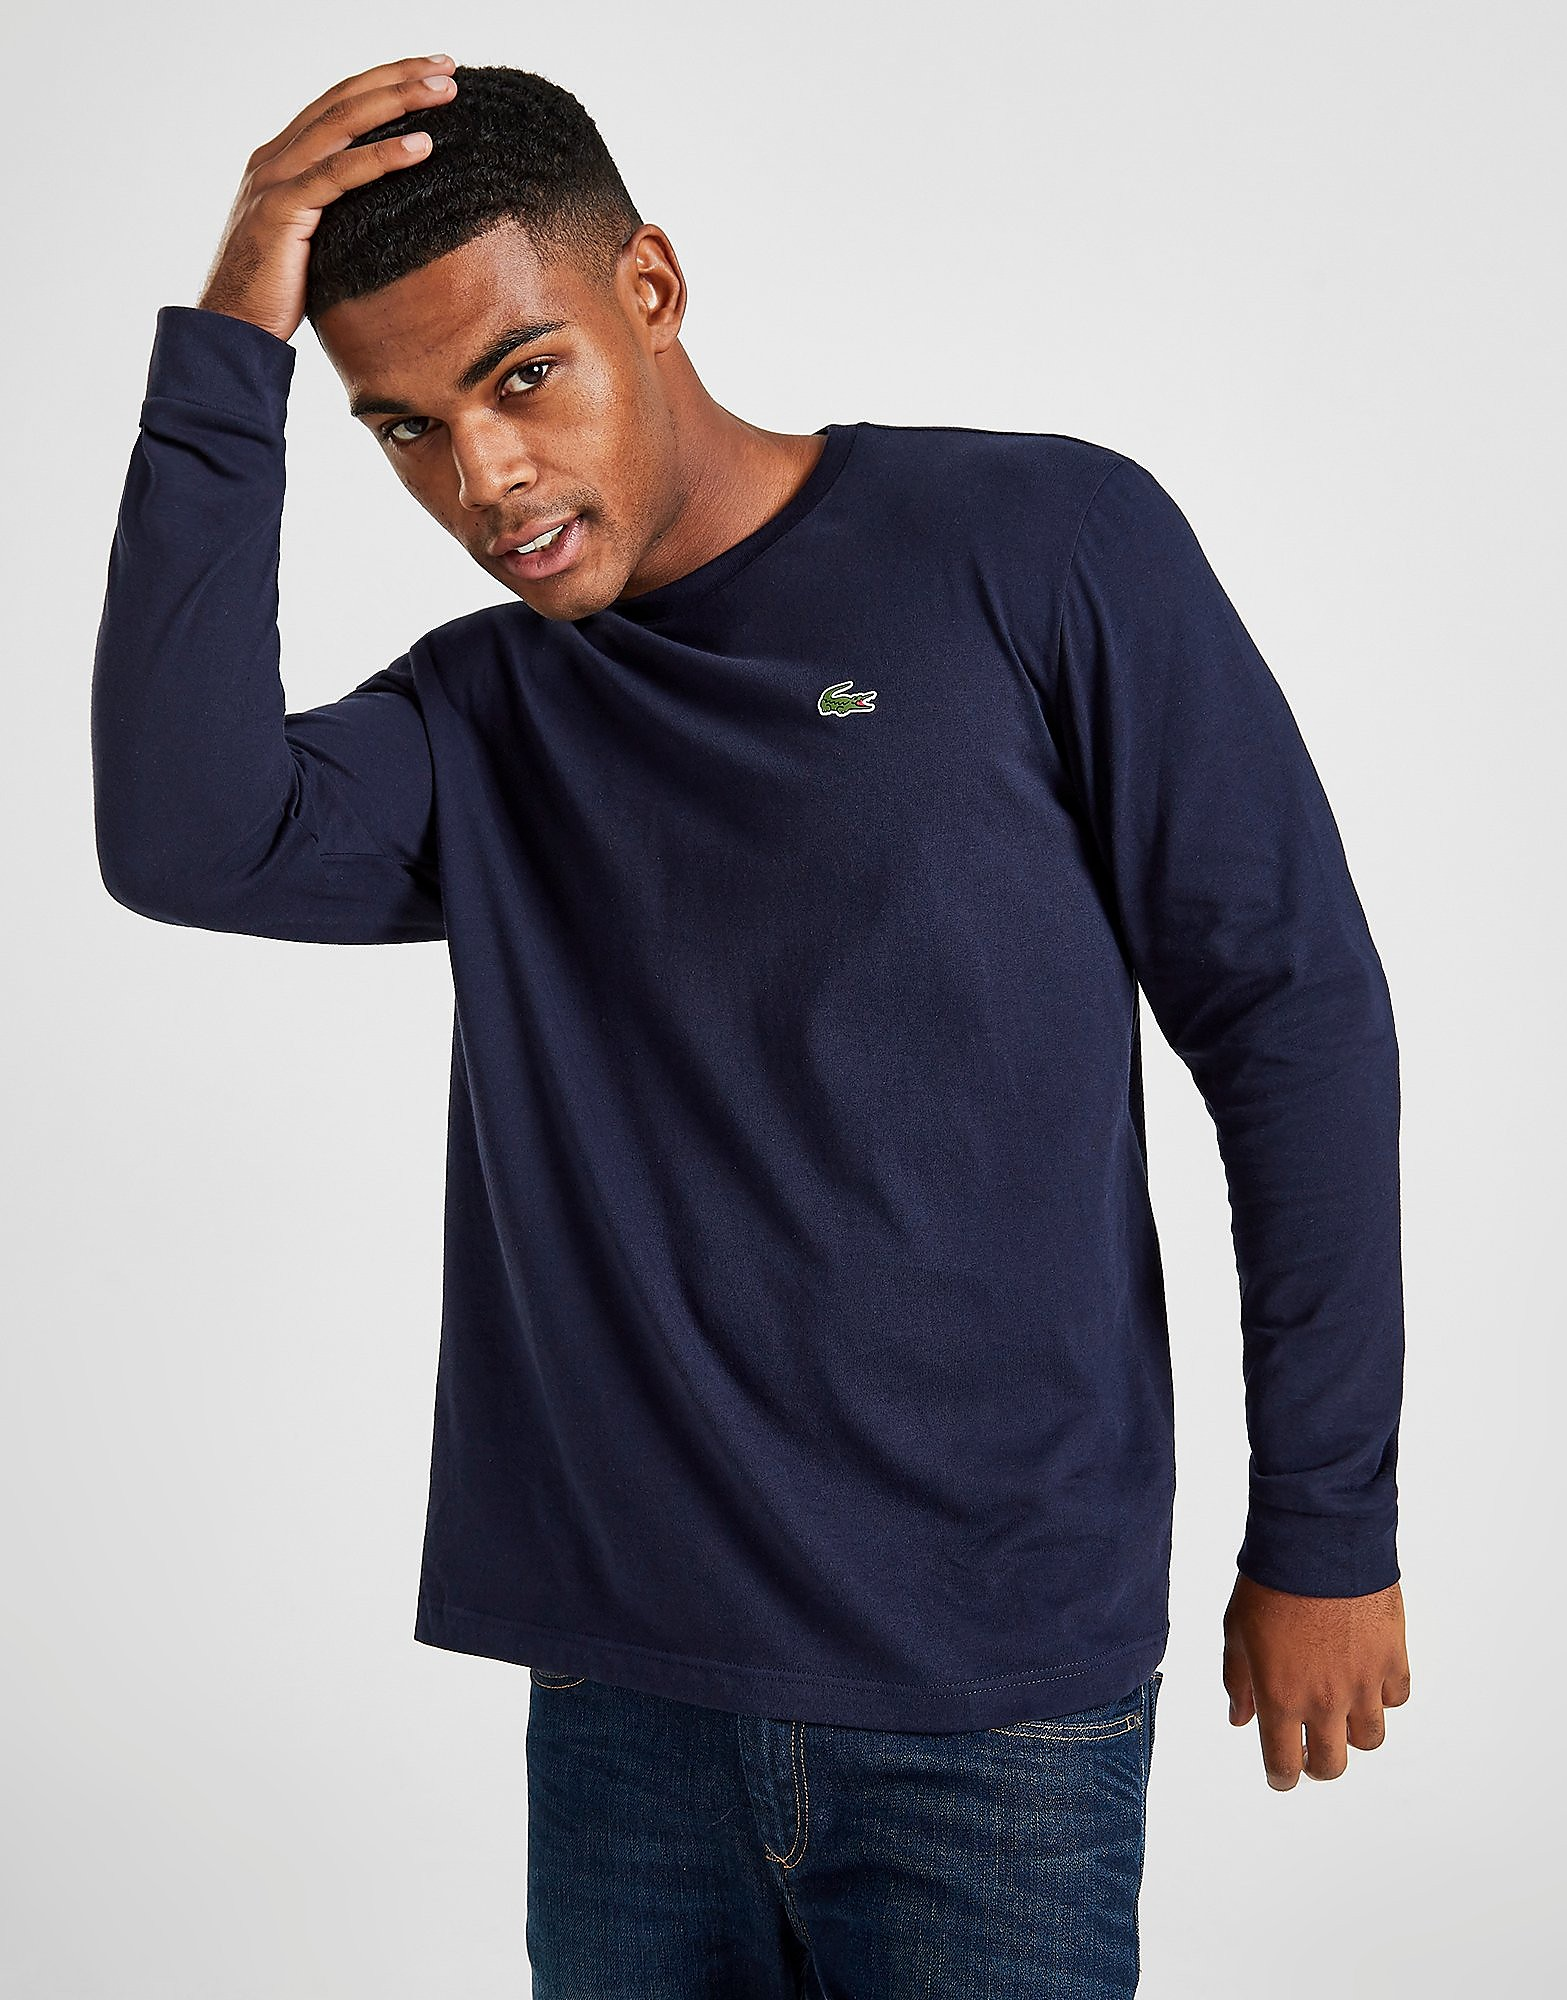 Lacoste Croc Long-Sleeved T-Shirt Heren